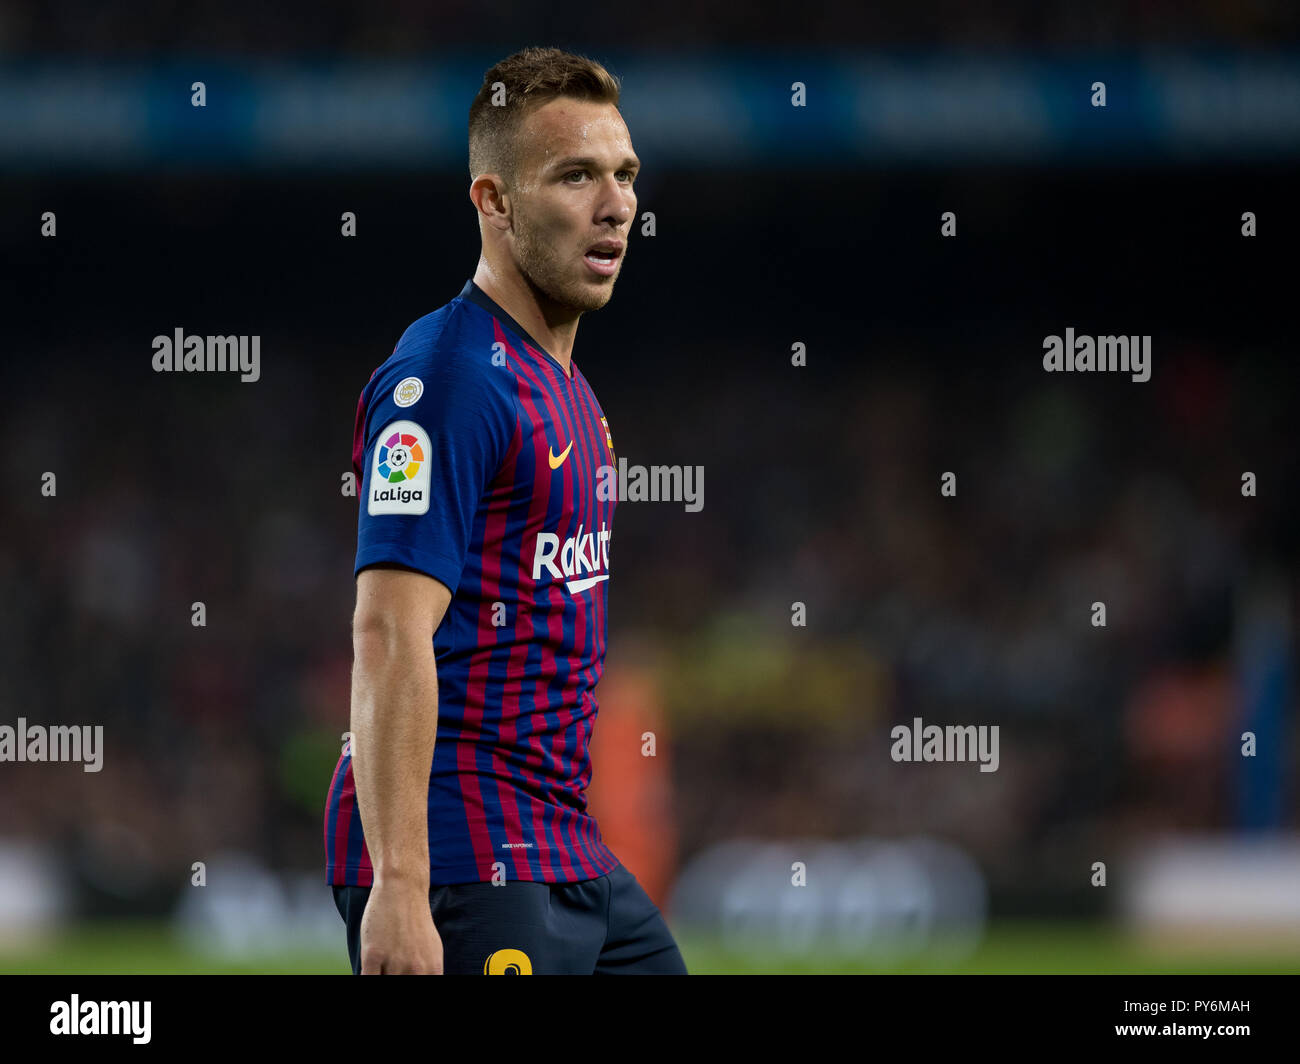 October 20th; Arthur of FC Barcelona during the 2018/2019 LaLiga Santander Round 8 game between FC Barcelona and Sevilla FC at Camp Nou on October 20, - Stock Image